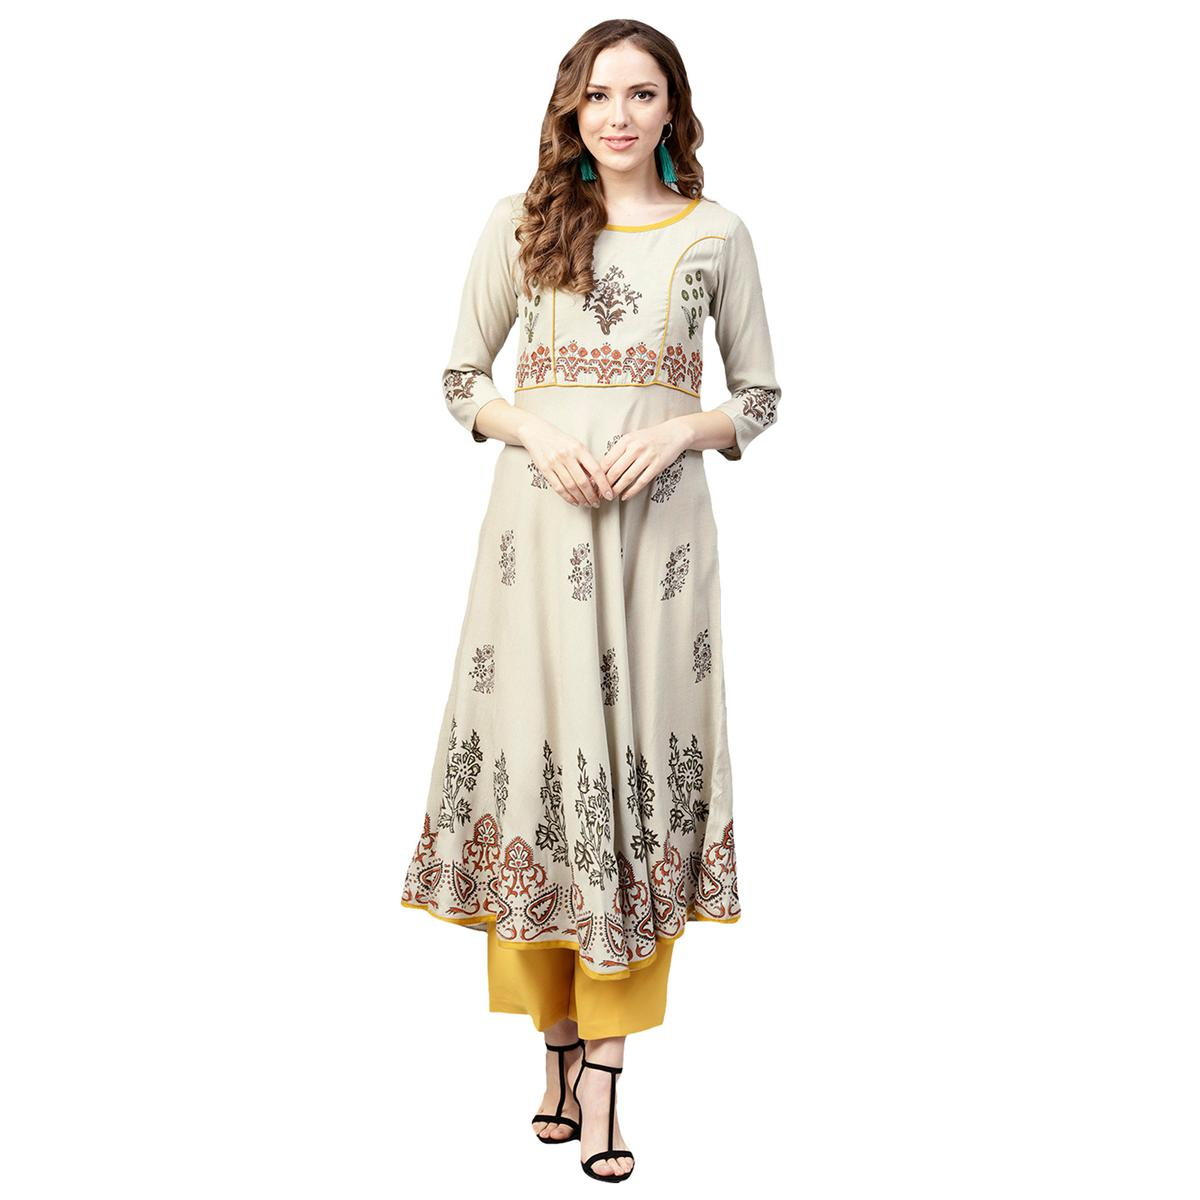 Sensational Off White Colored Casual Wear Printed Rayon Kurti